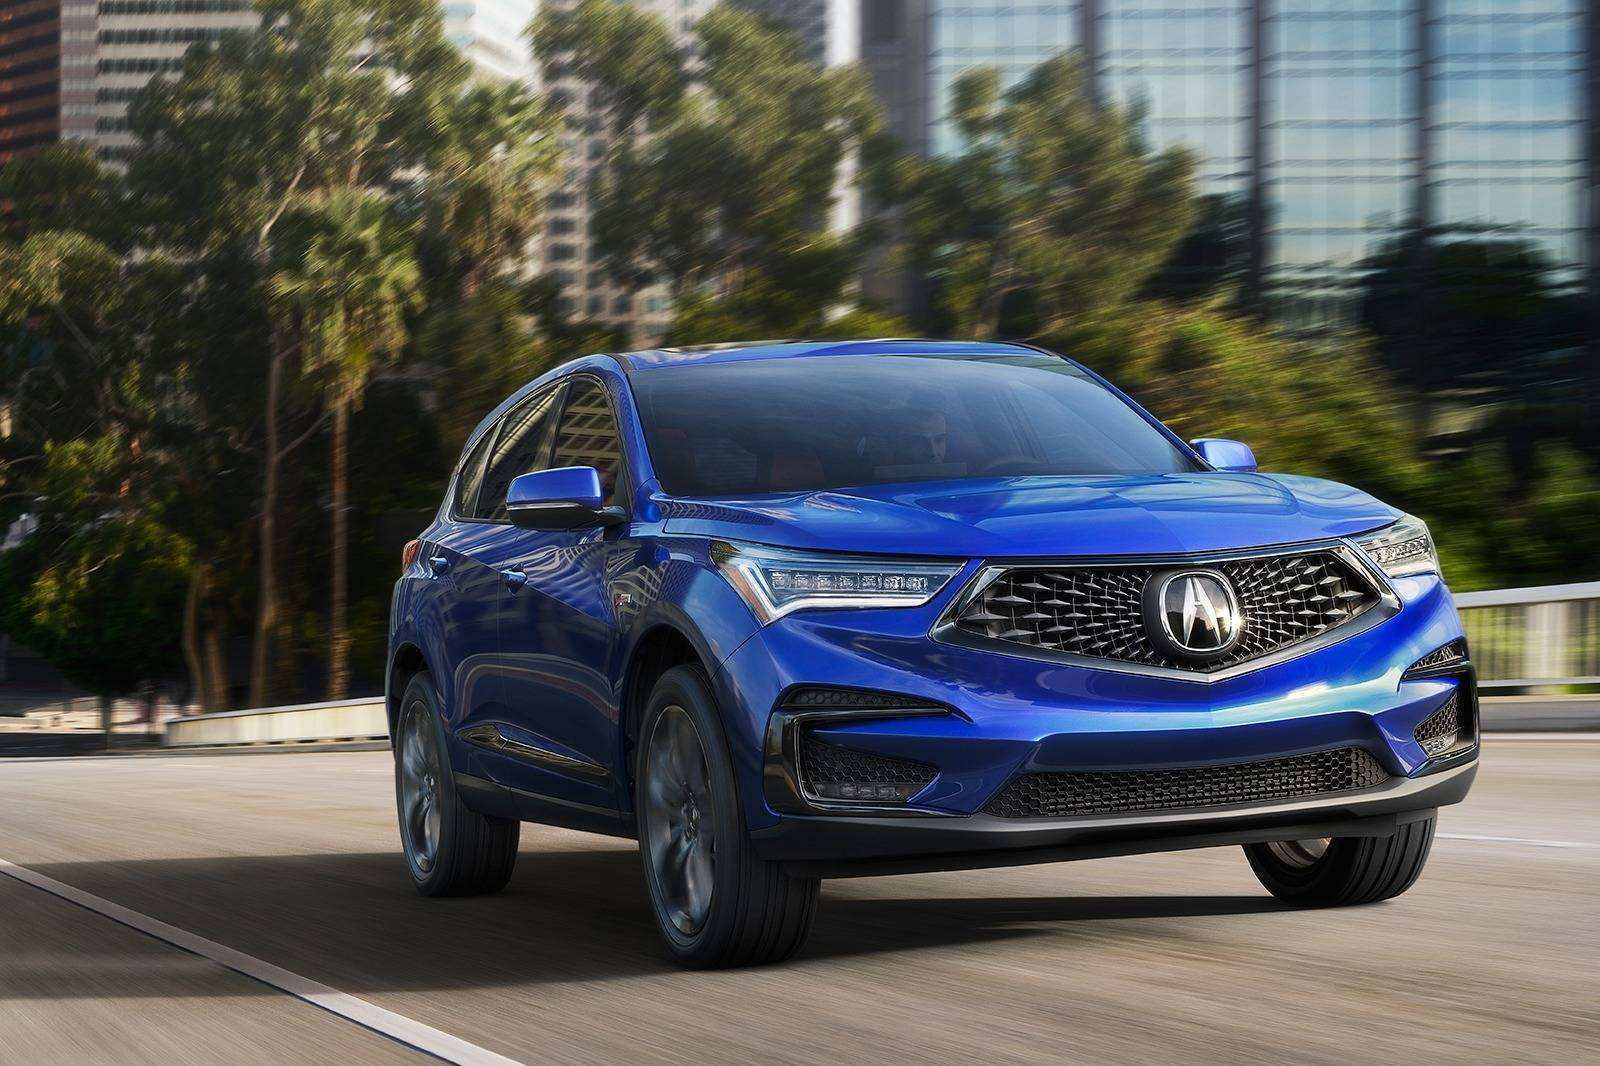 13 The The 2019 Acura Rdx Edmunds Review And Price Engine for The 2019 Acura Rdx Edmunds Review And Price